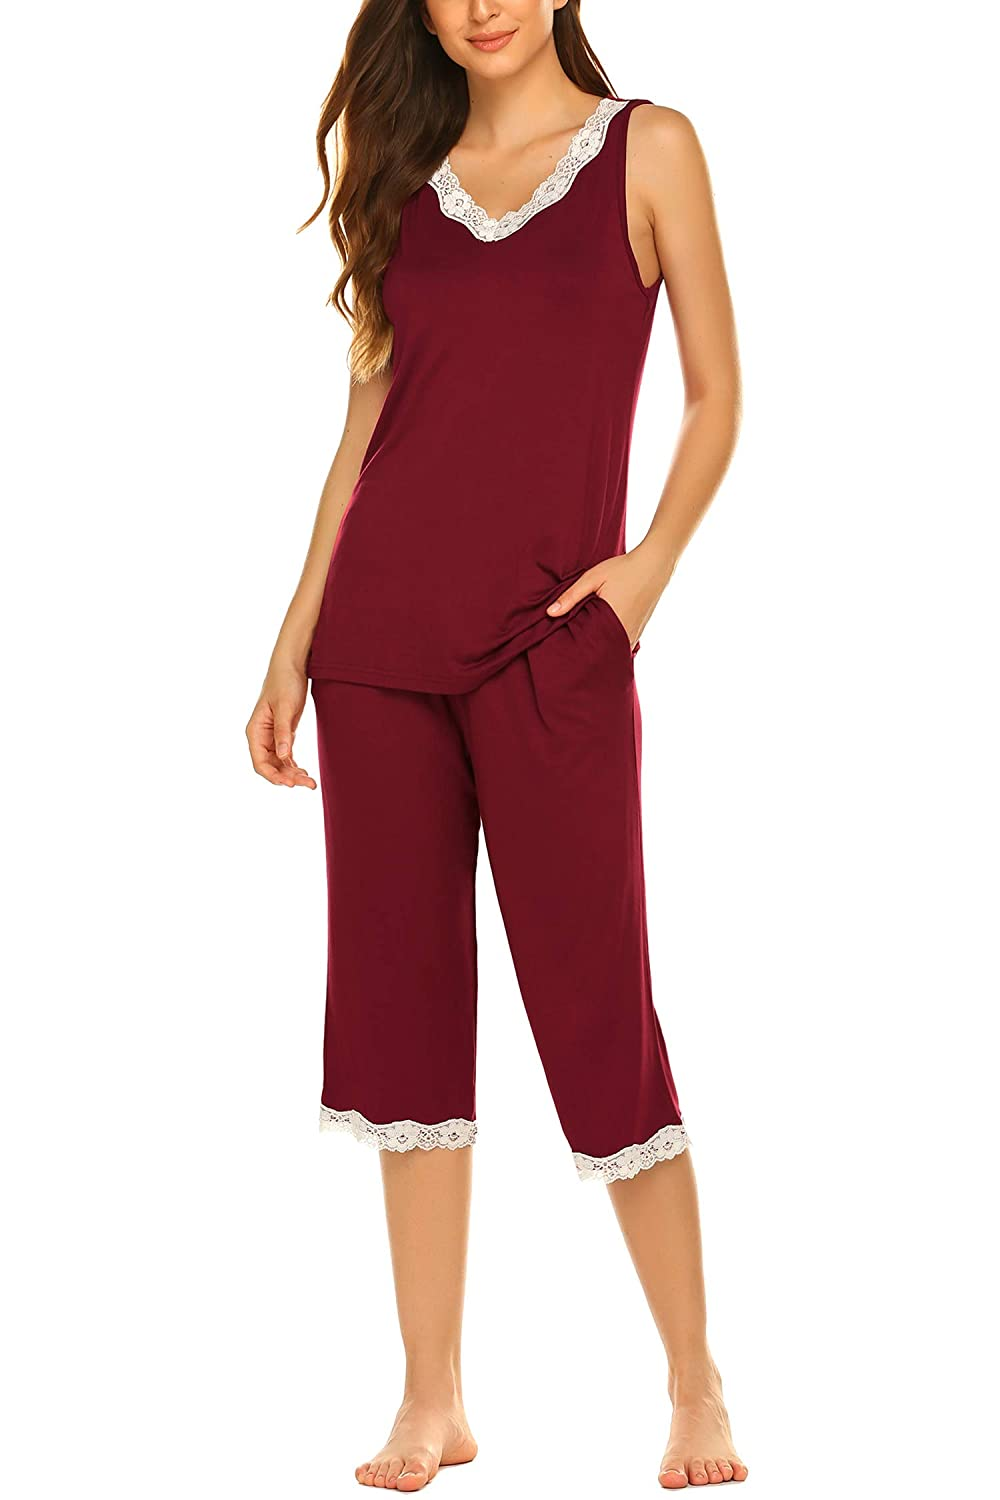 Hotouch Women's Pajama Set Lace Trim V-Neck Tank Top & Capri Pants Sleepwear Pjs Sets